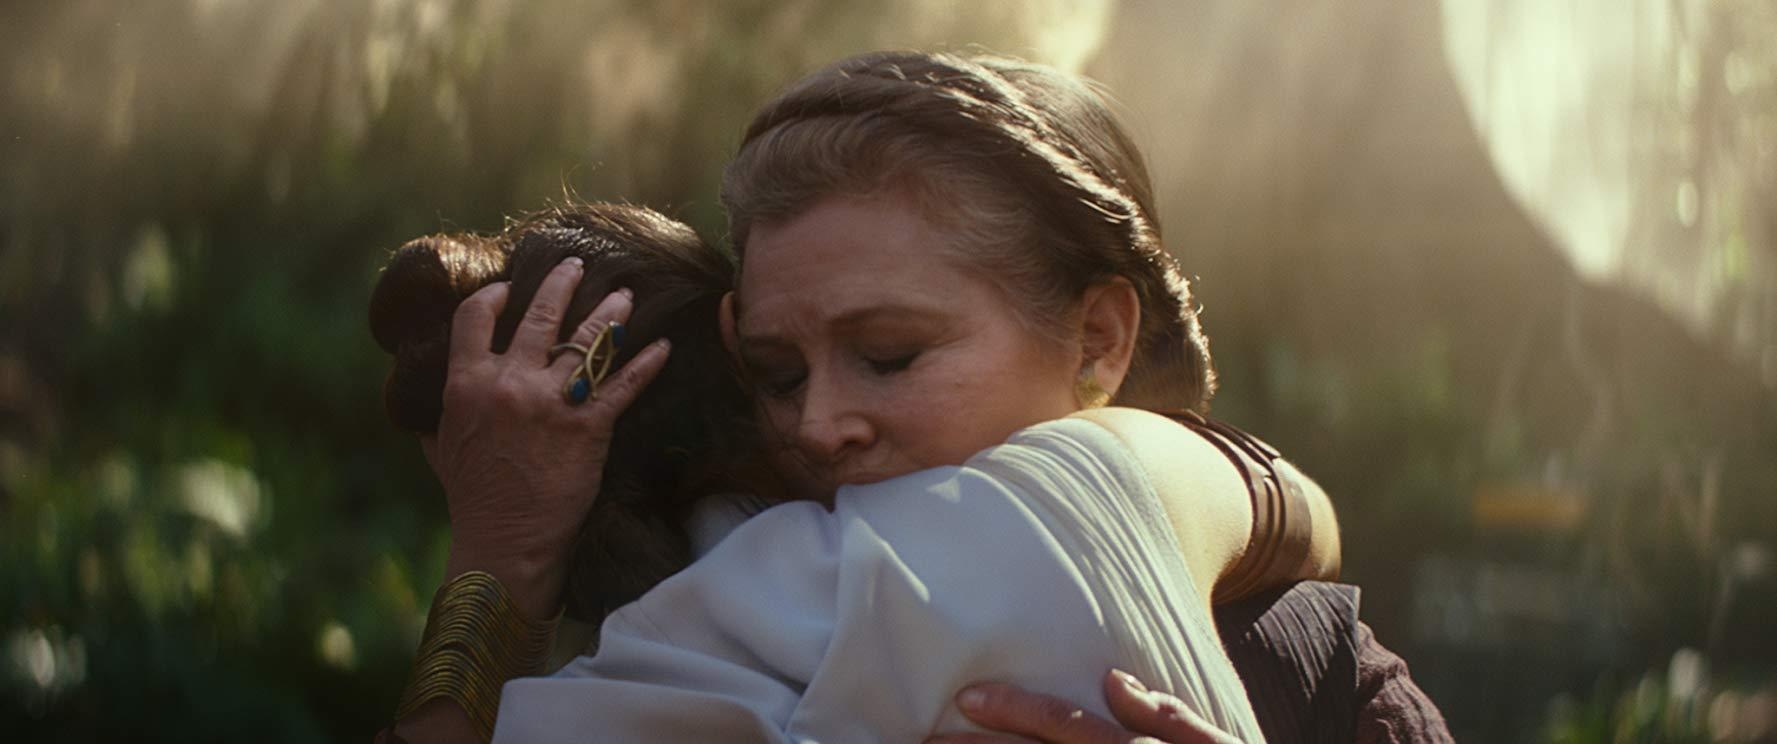 Leia's 'Star Wars: Rise Of Skywalker' role is just as 'profound' as Han Solo's in 'The Force Awakens'